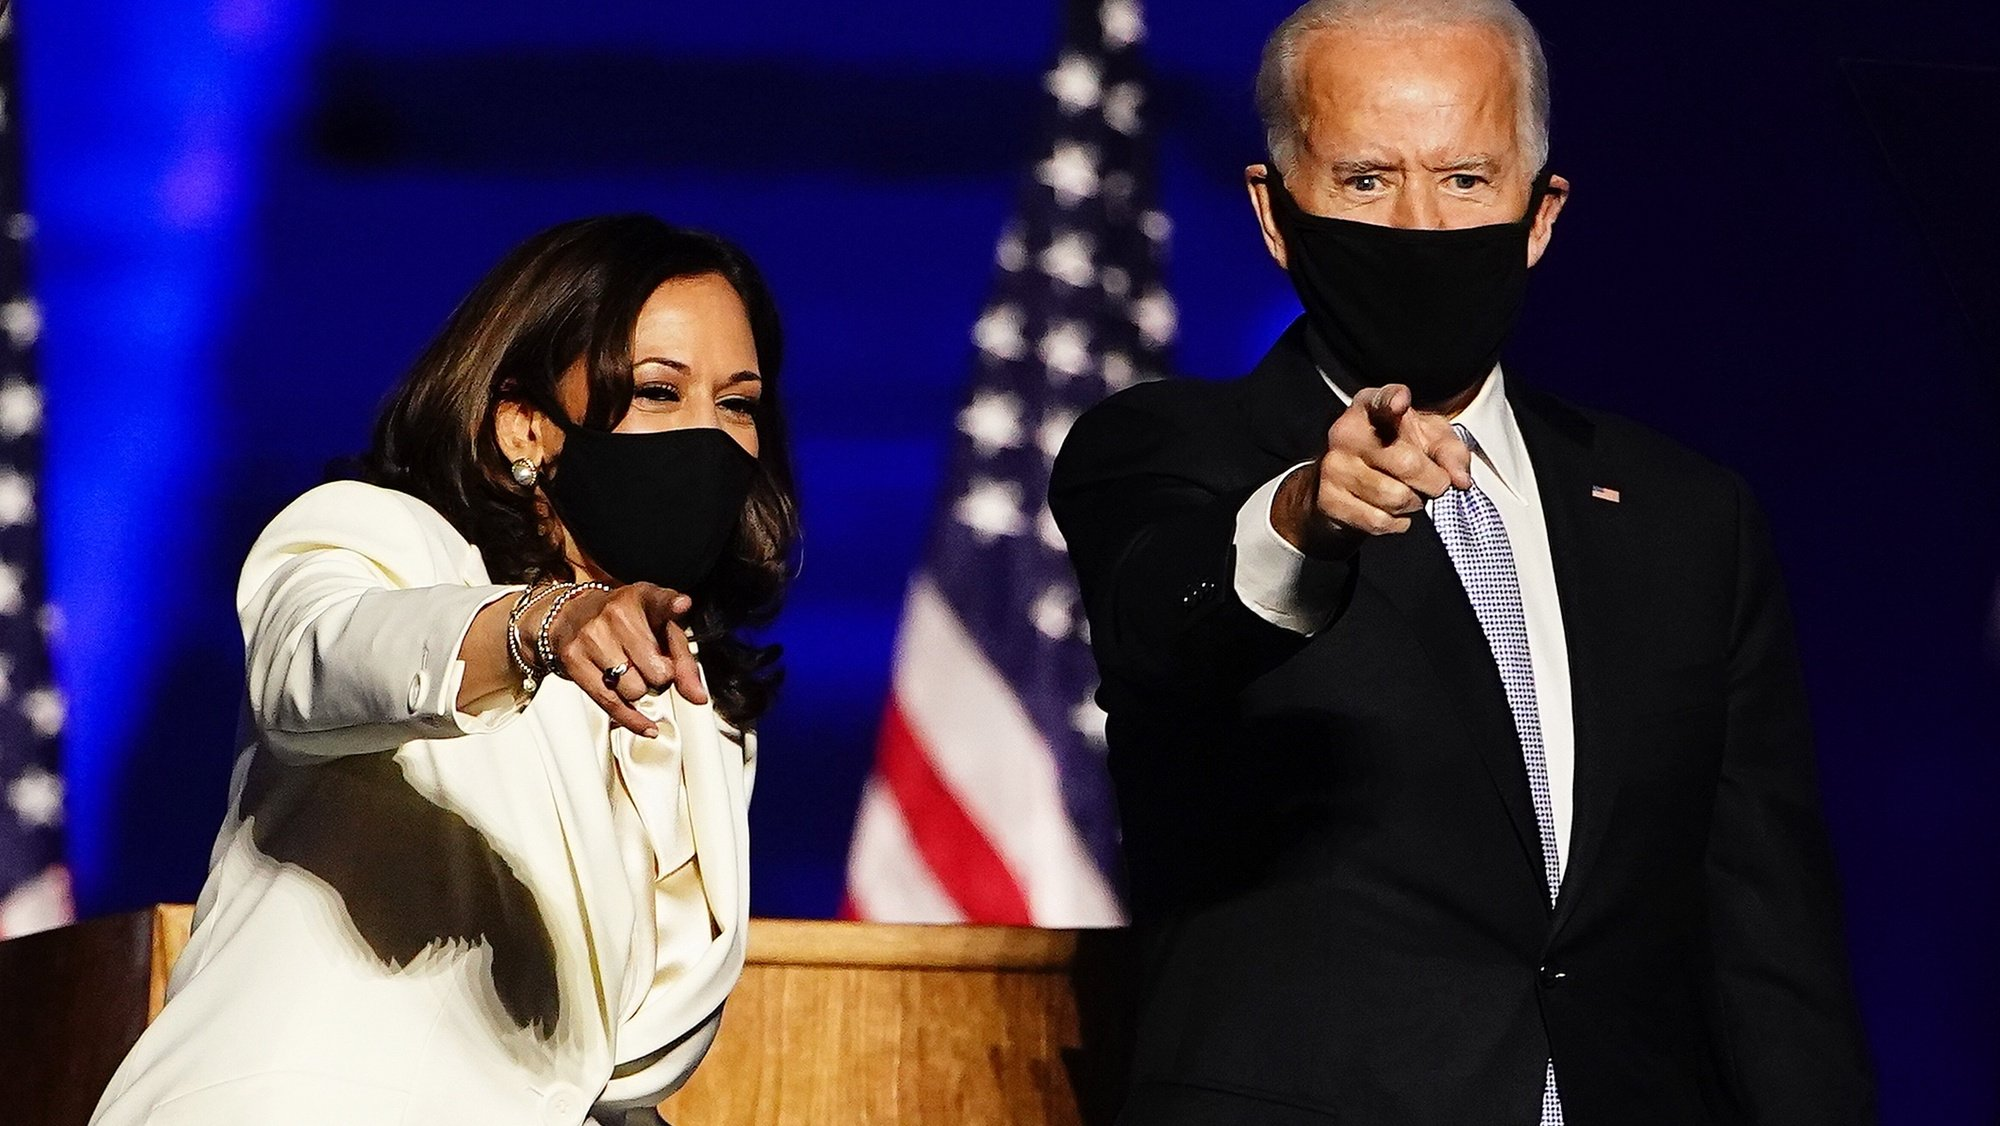 epa08876558 (FILE) - Vice President-Elect Kamala Harris (L) and President-elect Joe Biden (R) gesture as they arrive for their victory address after being declared the winners in the 2020 US presidential election, in Wilmington, Delaware, USA, 07 November 2020 (reissued 11 December 2020). Time magazine has named Joe Biden and Kamala Harris 2020's Person of the Year.  EPA/JIM LO SCALZO